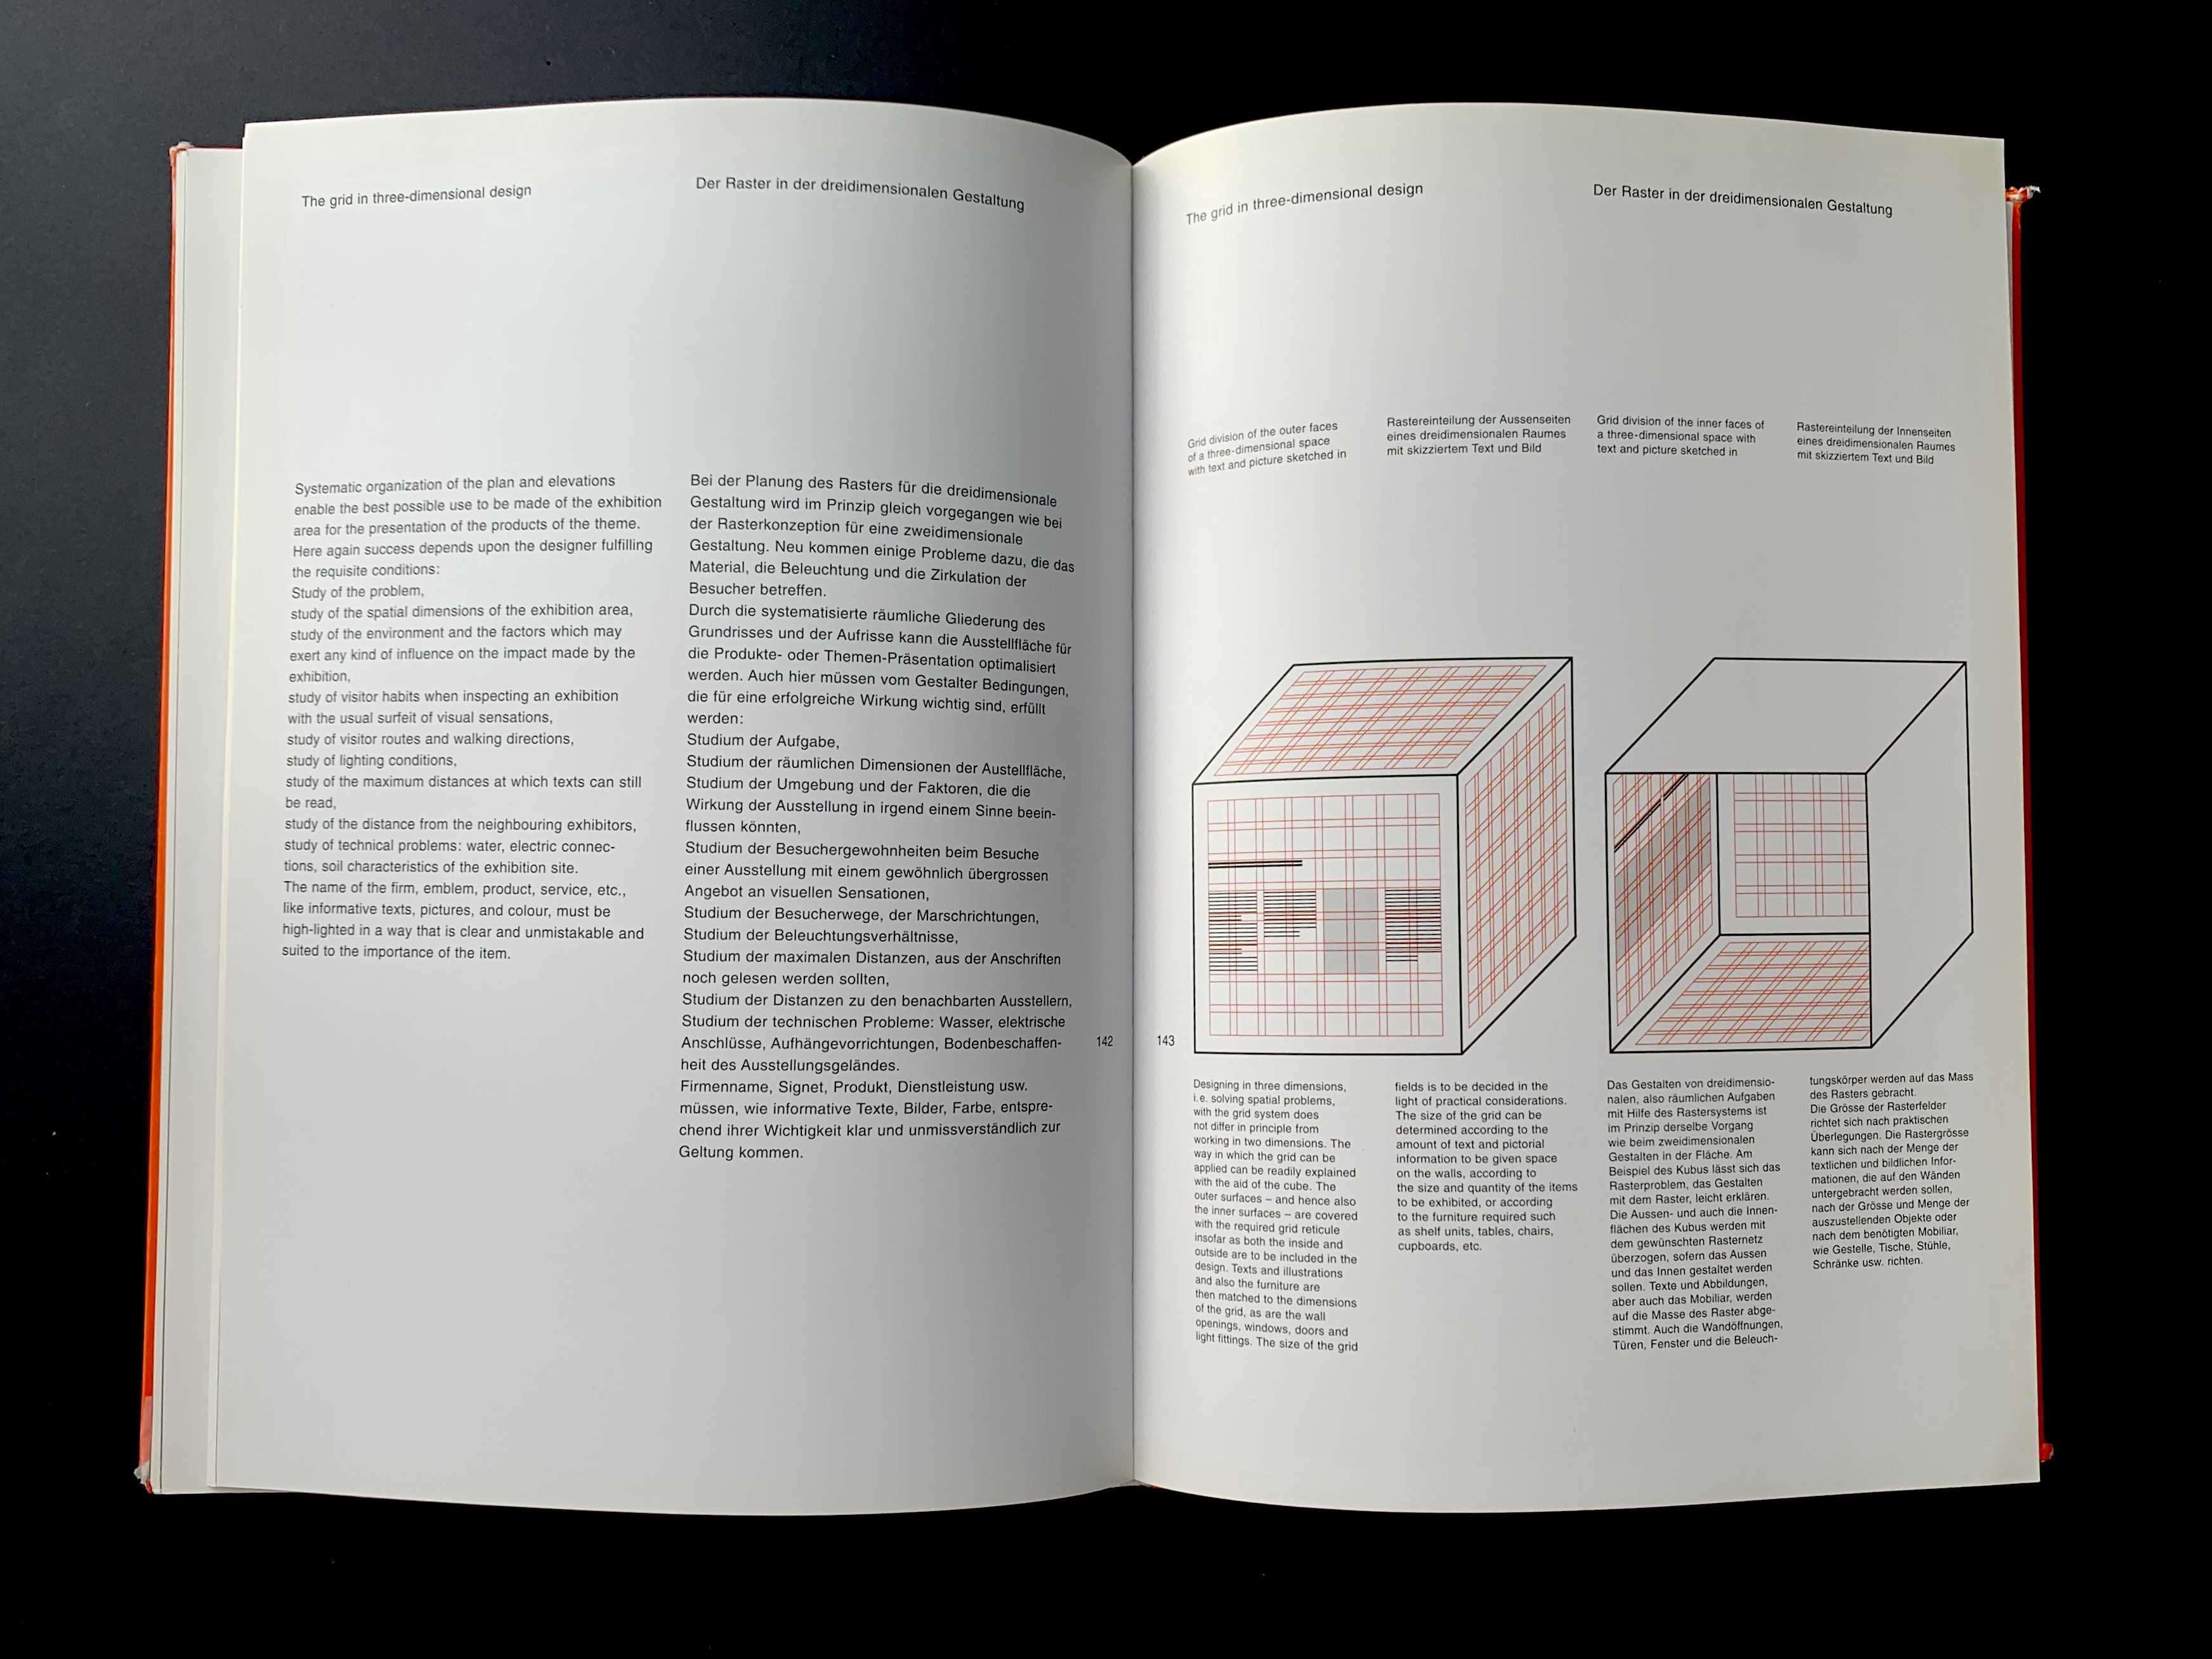 Grid Systems In Graphic Design A Visual Communication Manual For Graphic Designers Typographers And Three Dimensional Designers By Josef Mulller Brockmann By Corina Paraschiv Medium